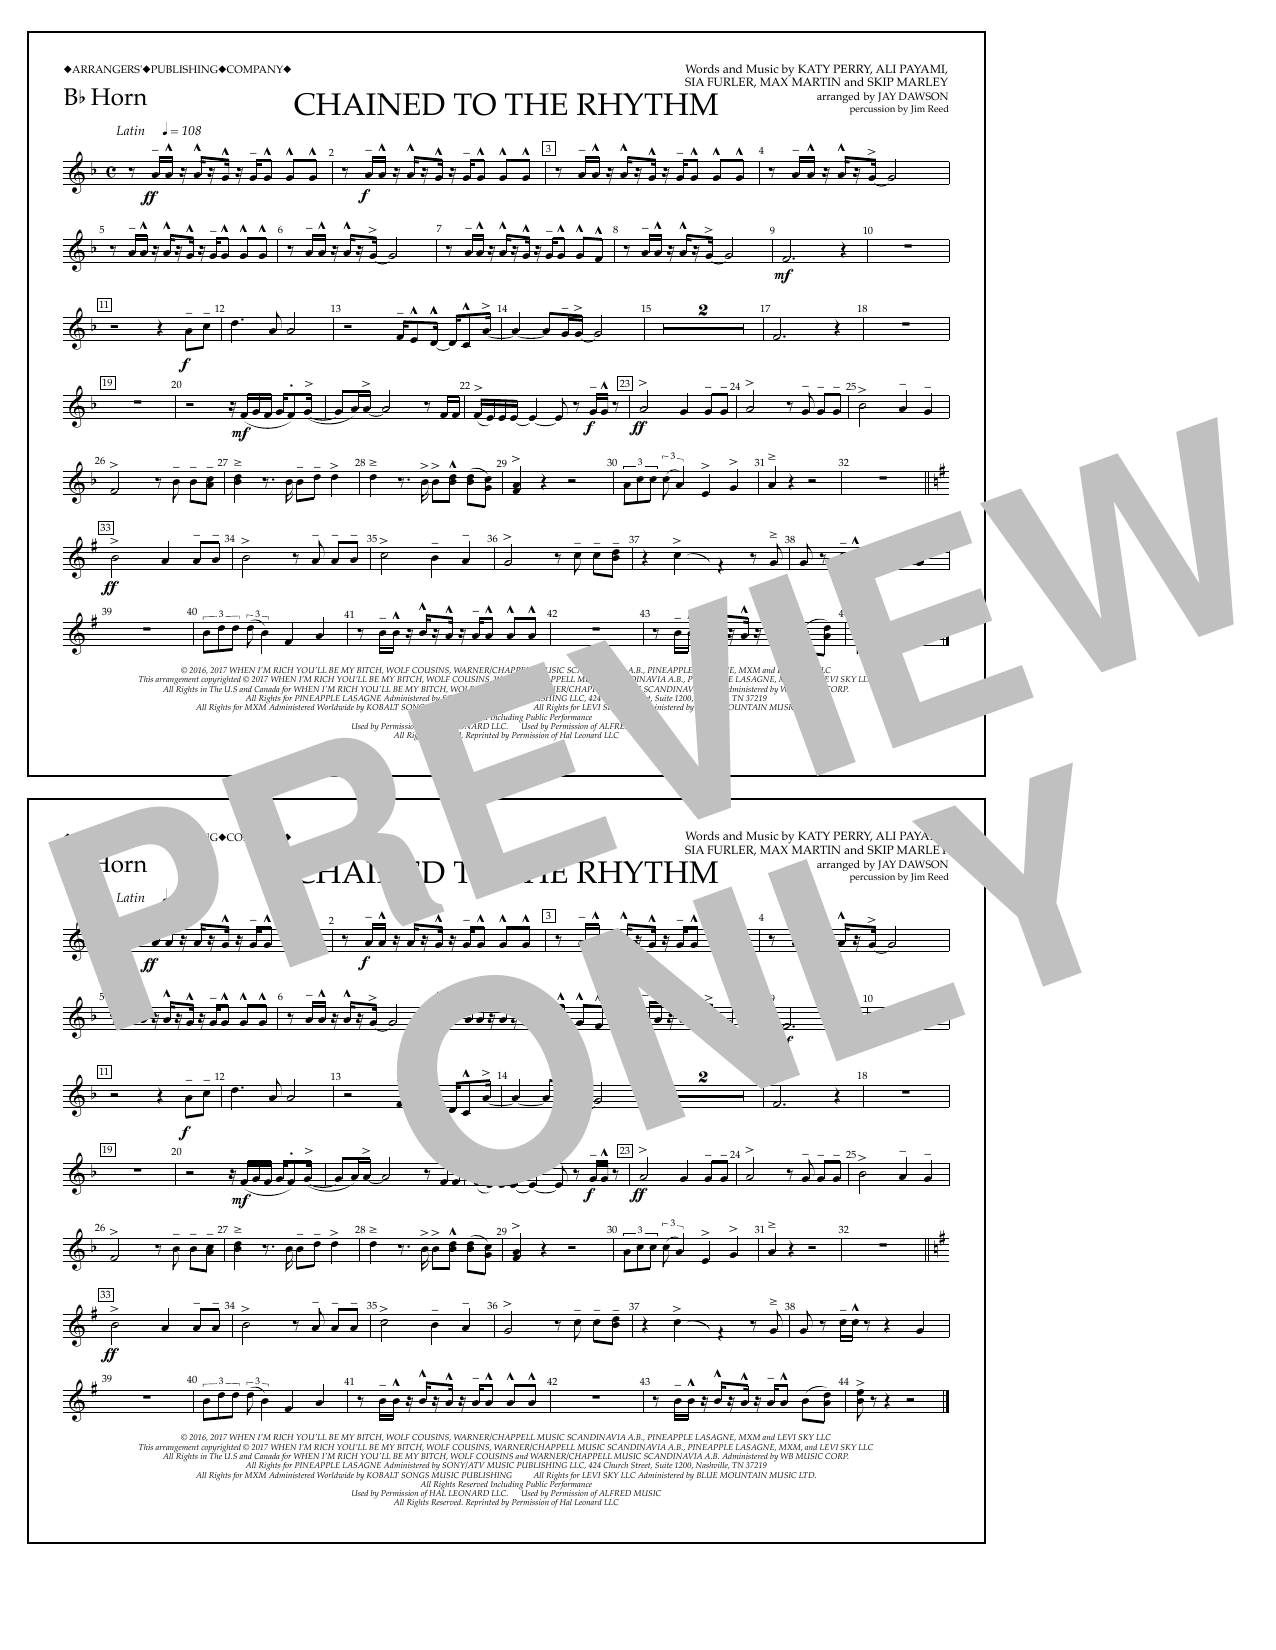 Chained to the Rhythm - Bb Horn Sheet Music